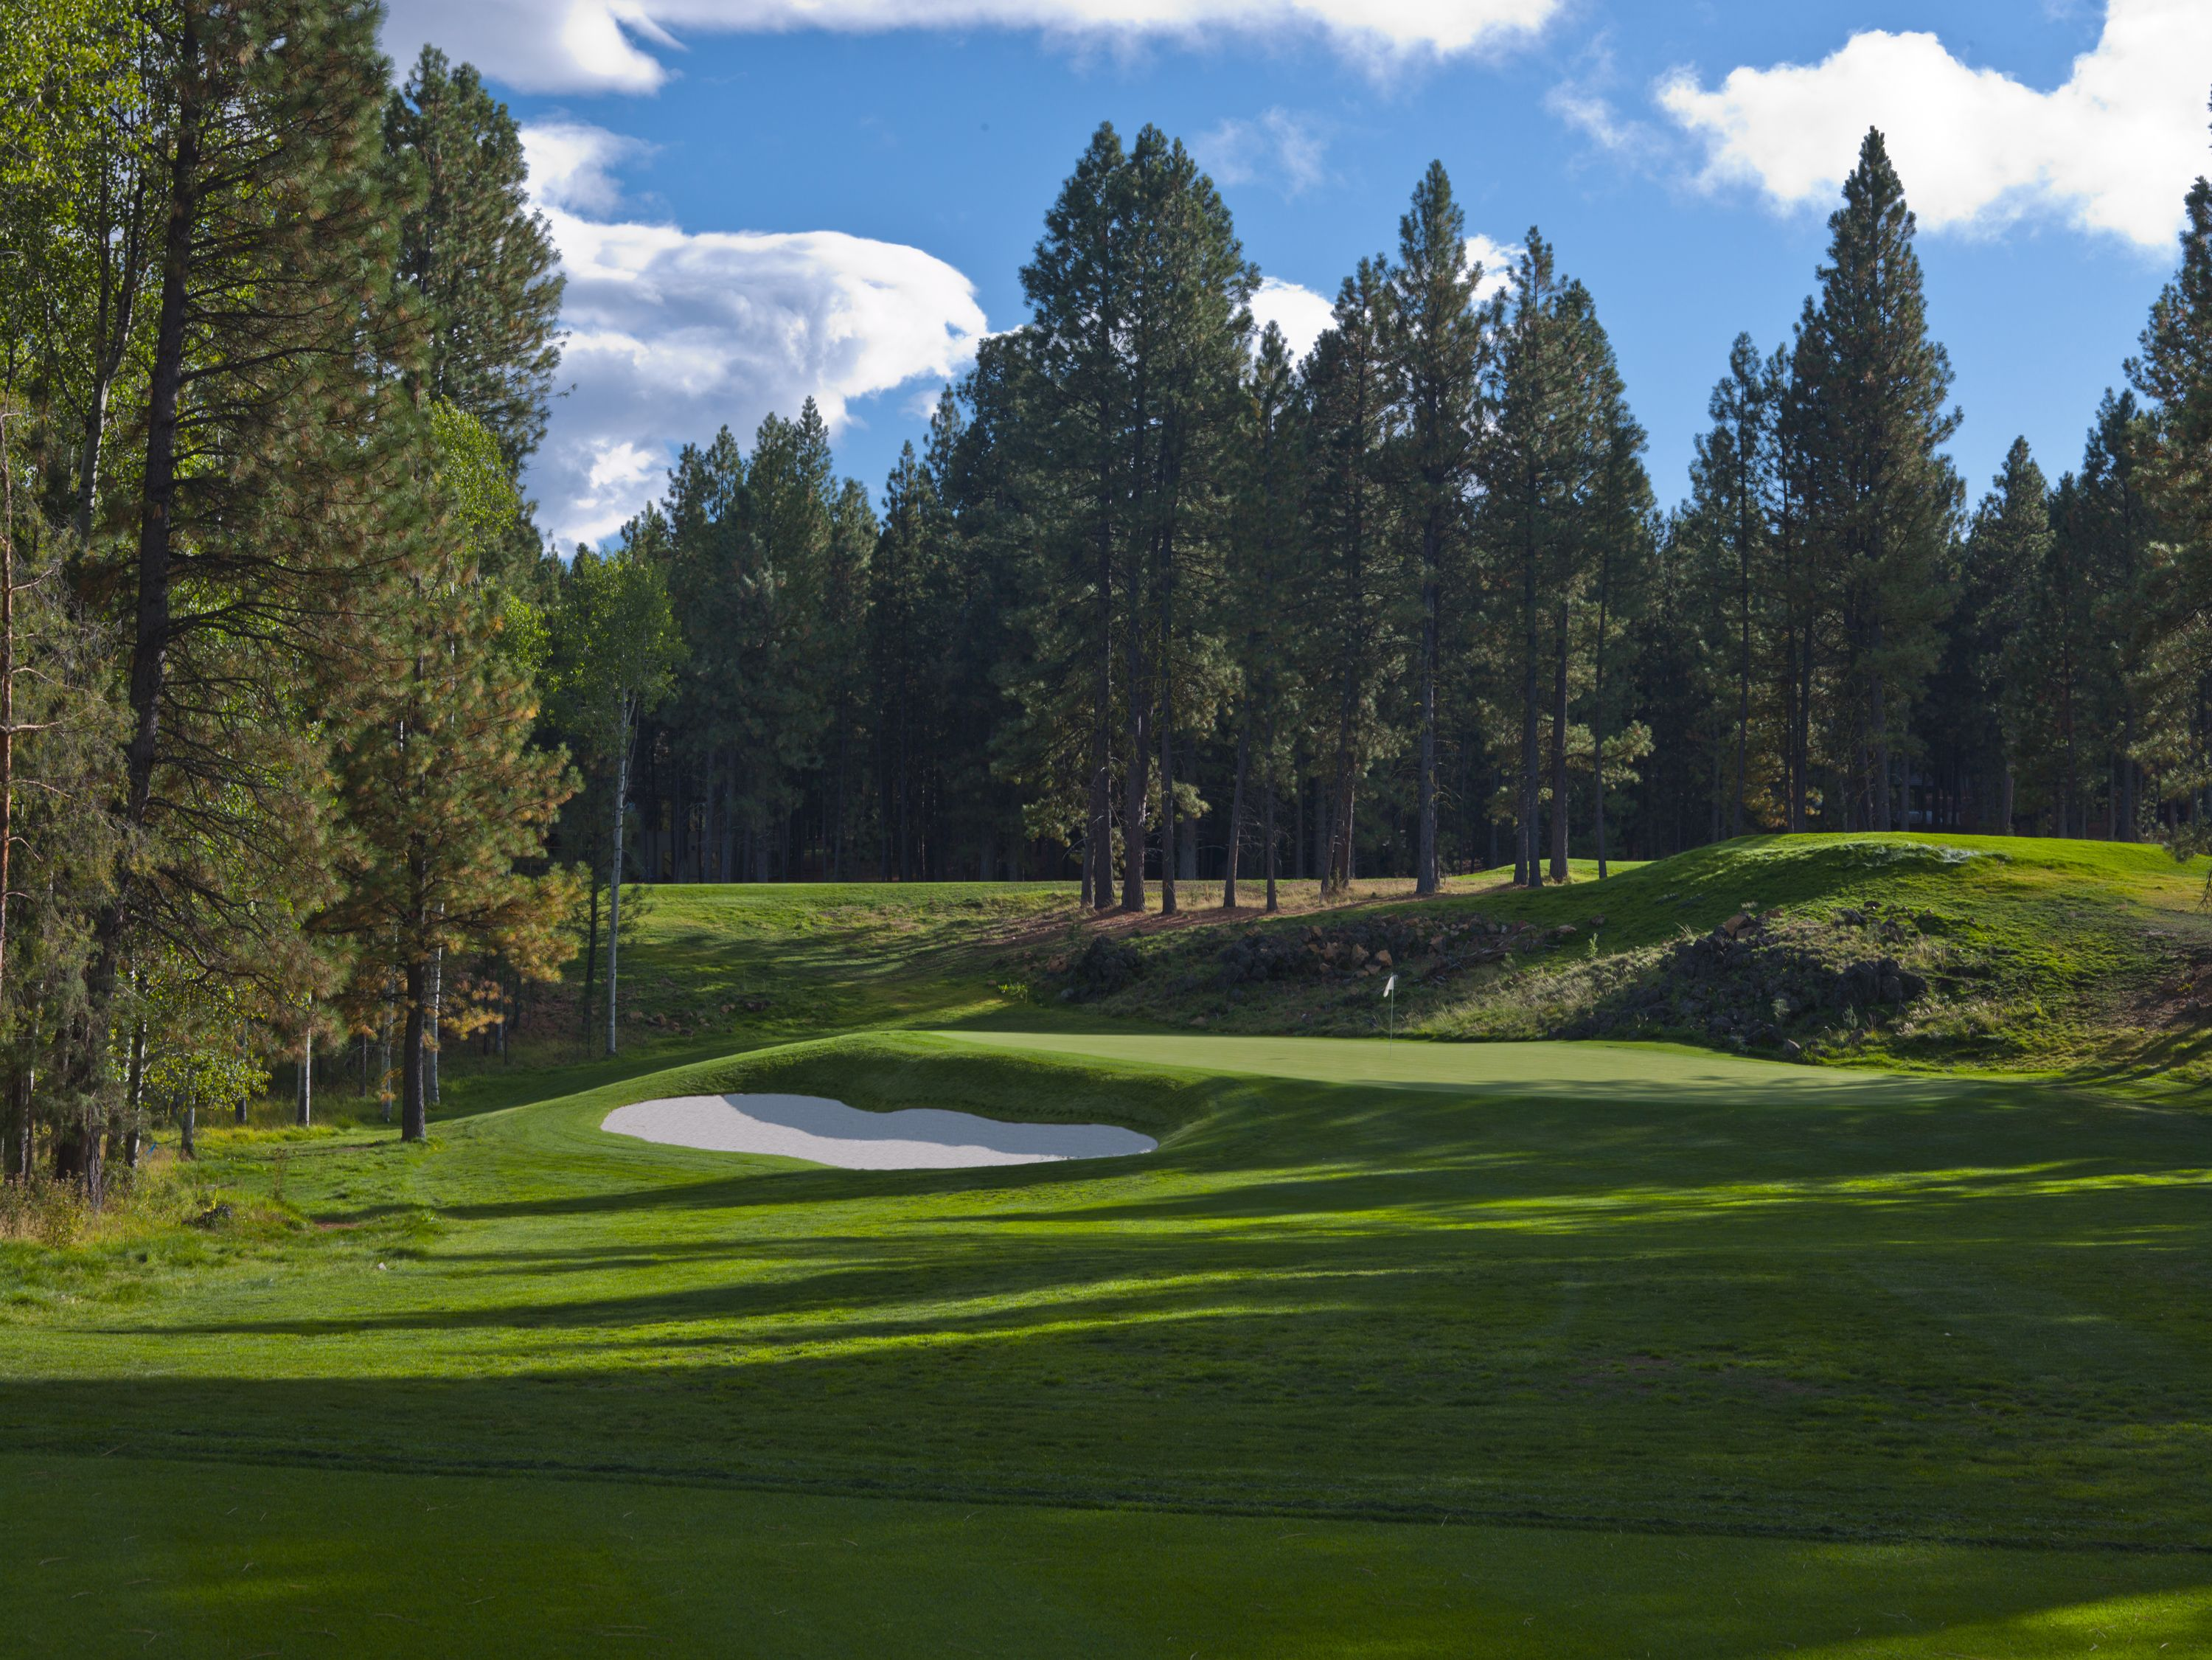 The New Glaze Meadow Golf Course Hole 8 At Black Butte Ranch Oregon Image By Larry Lambrecht Golf Course R Vacation Locations Golf Courses Vacation Spots